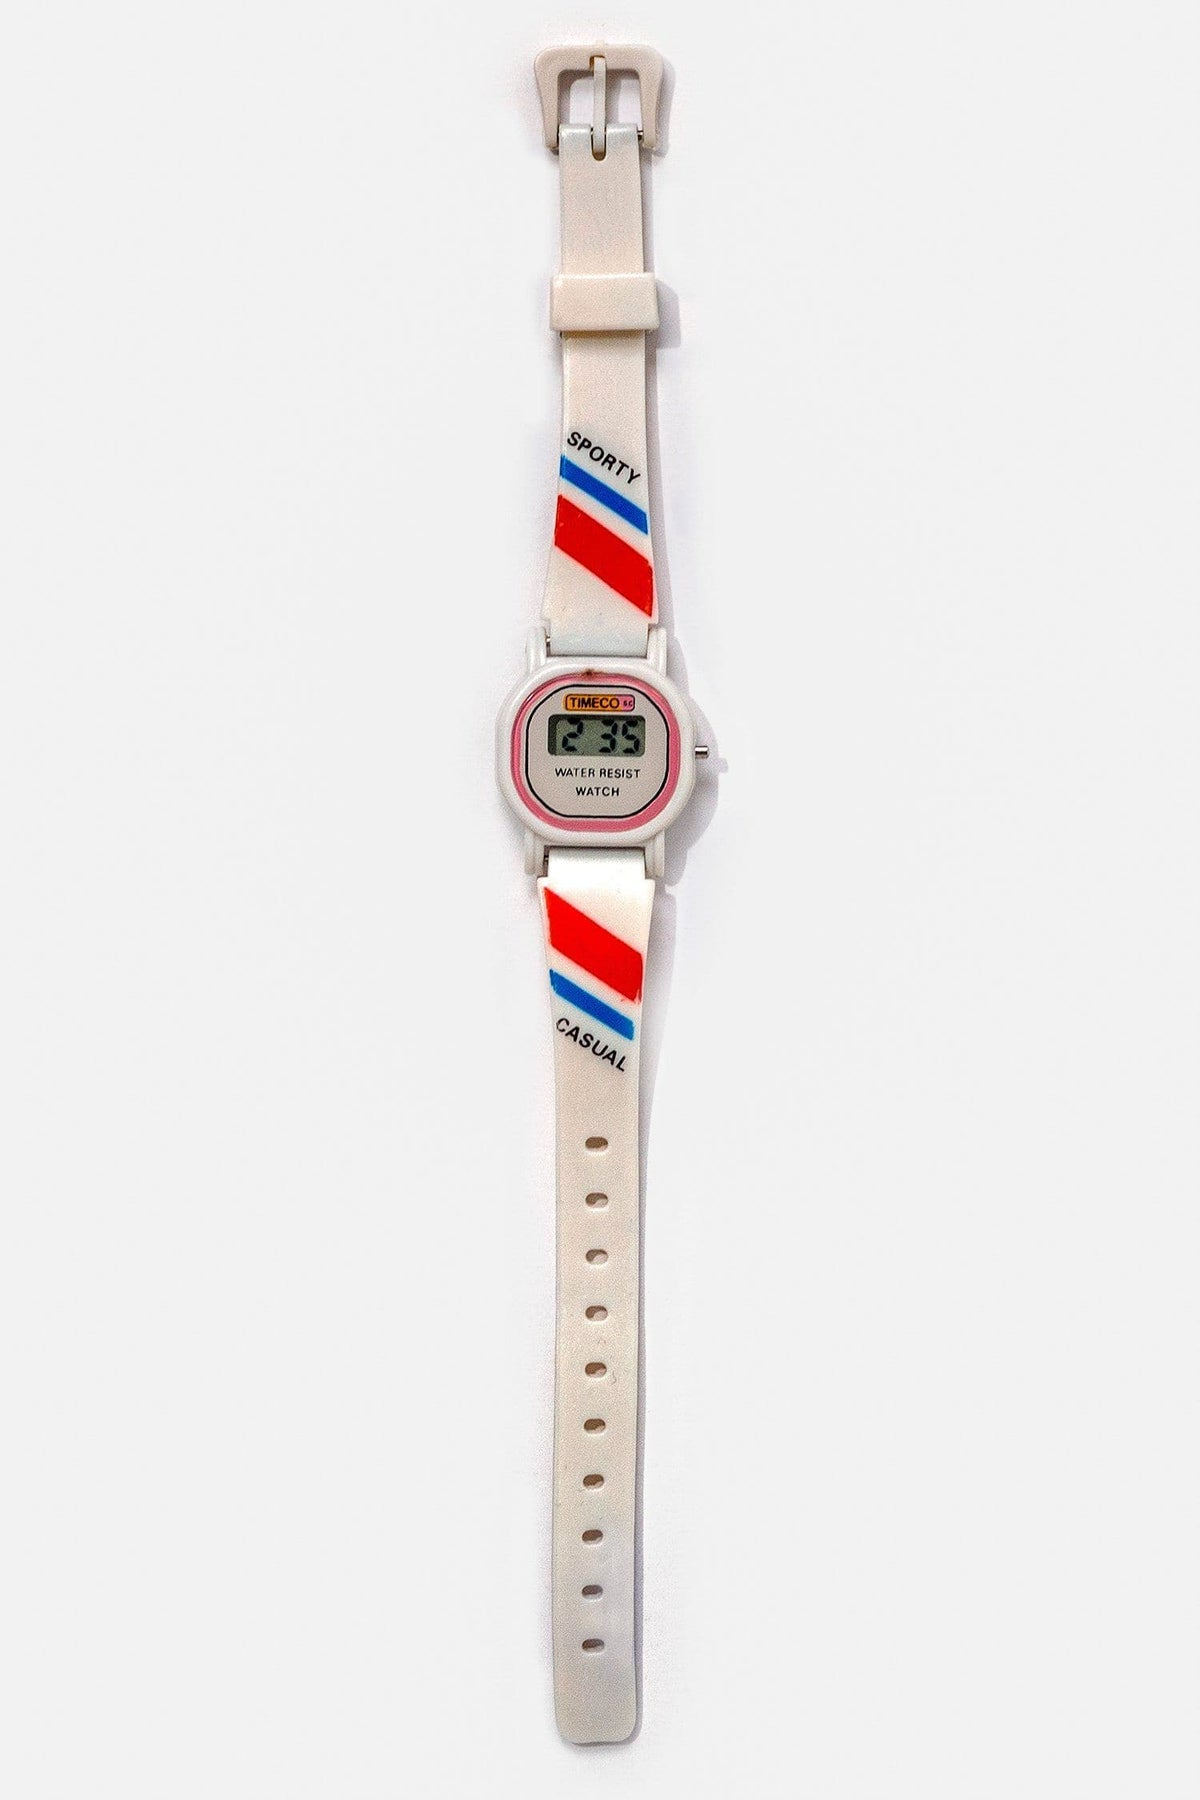 WCHRTCO - Casual French Watch